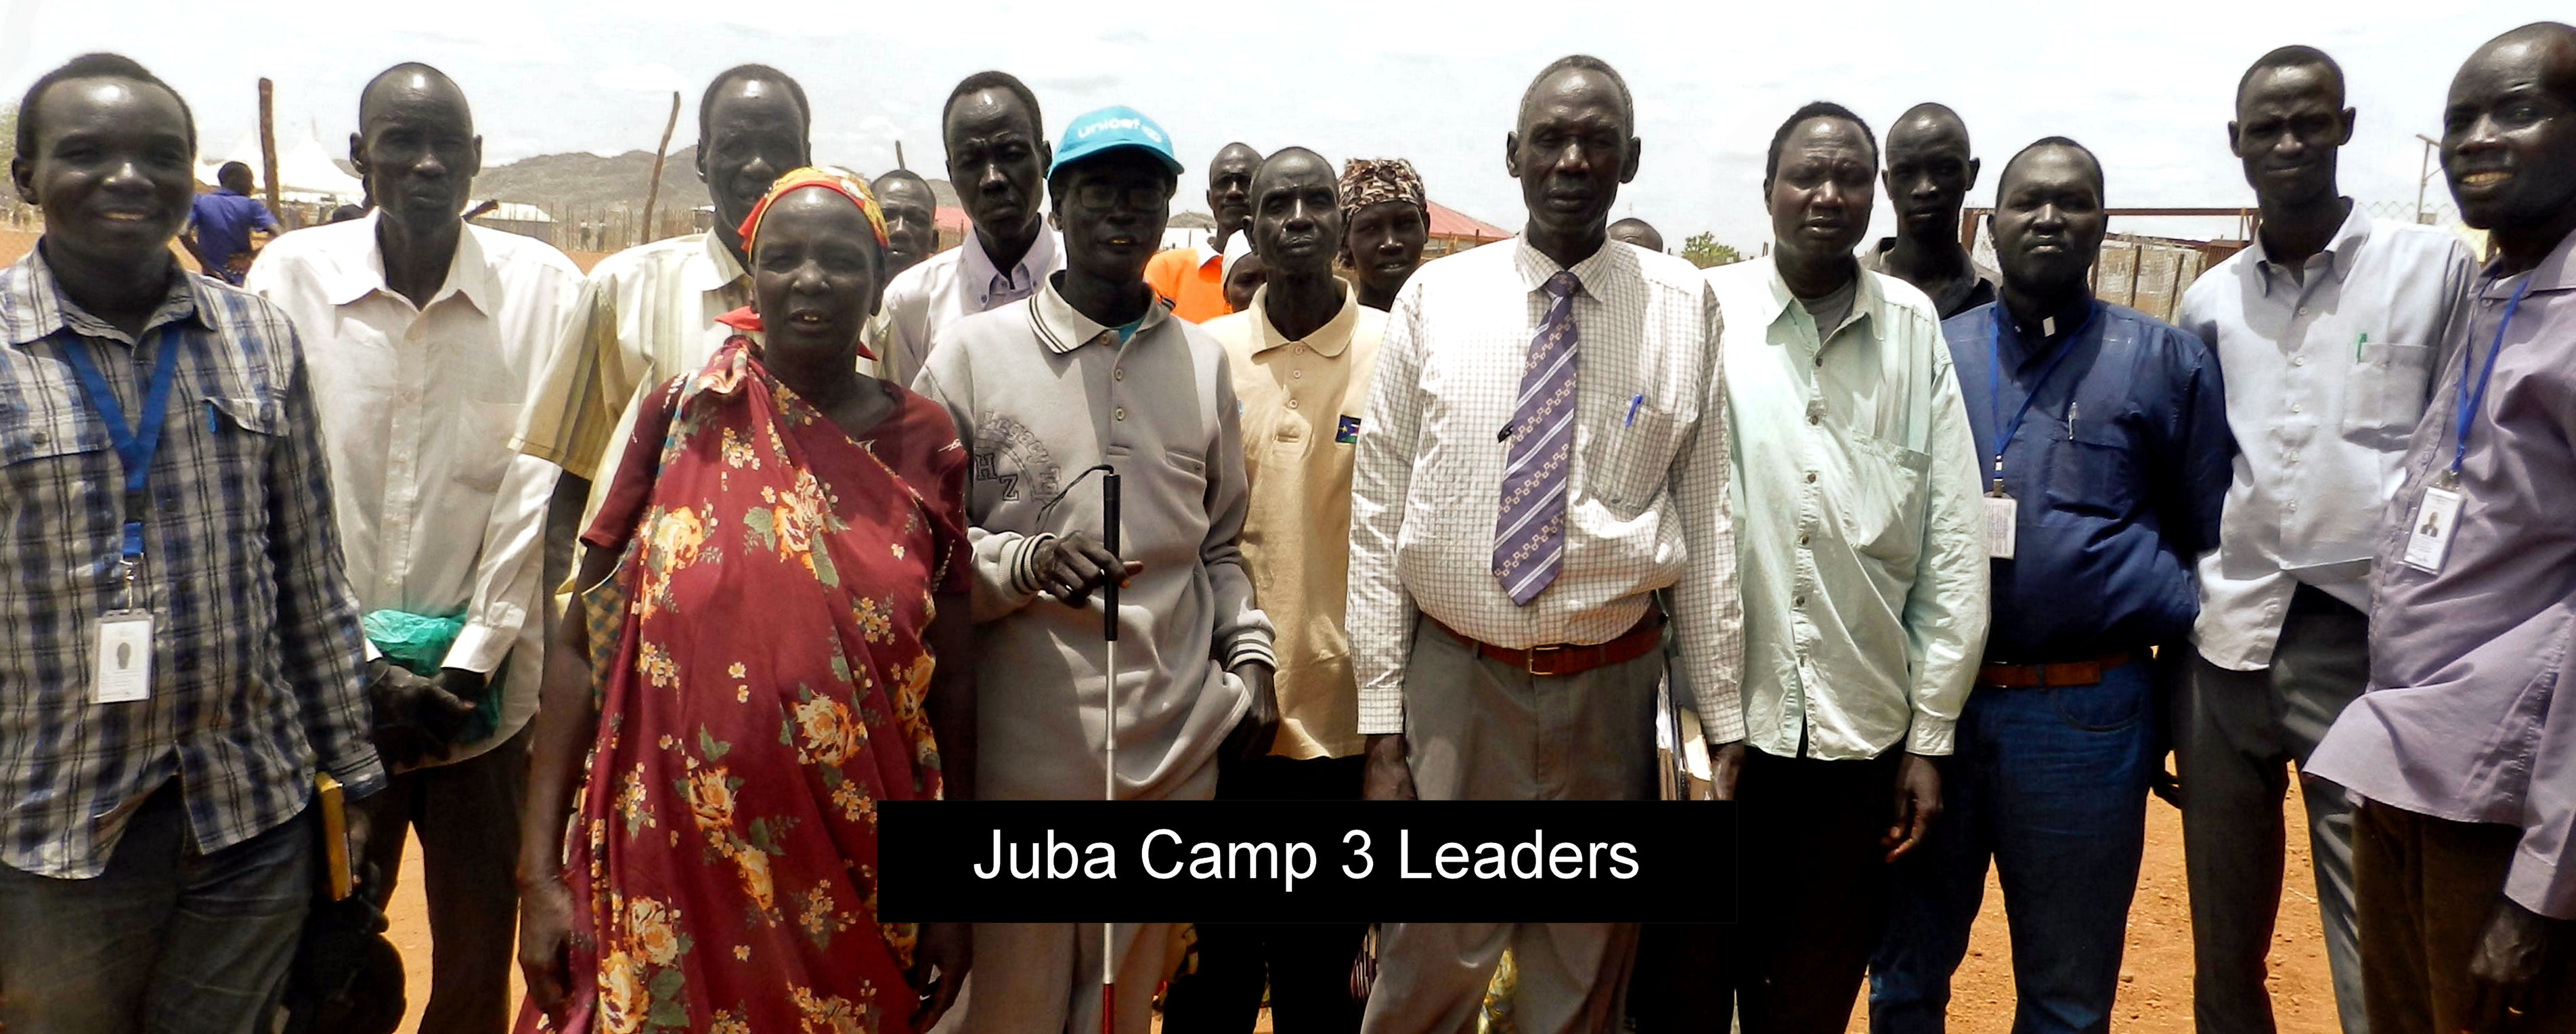 Juba Camp 3 Leaders